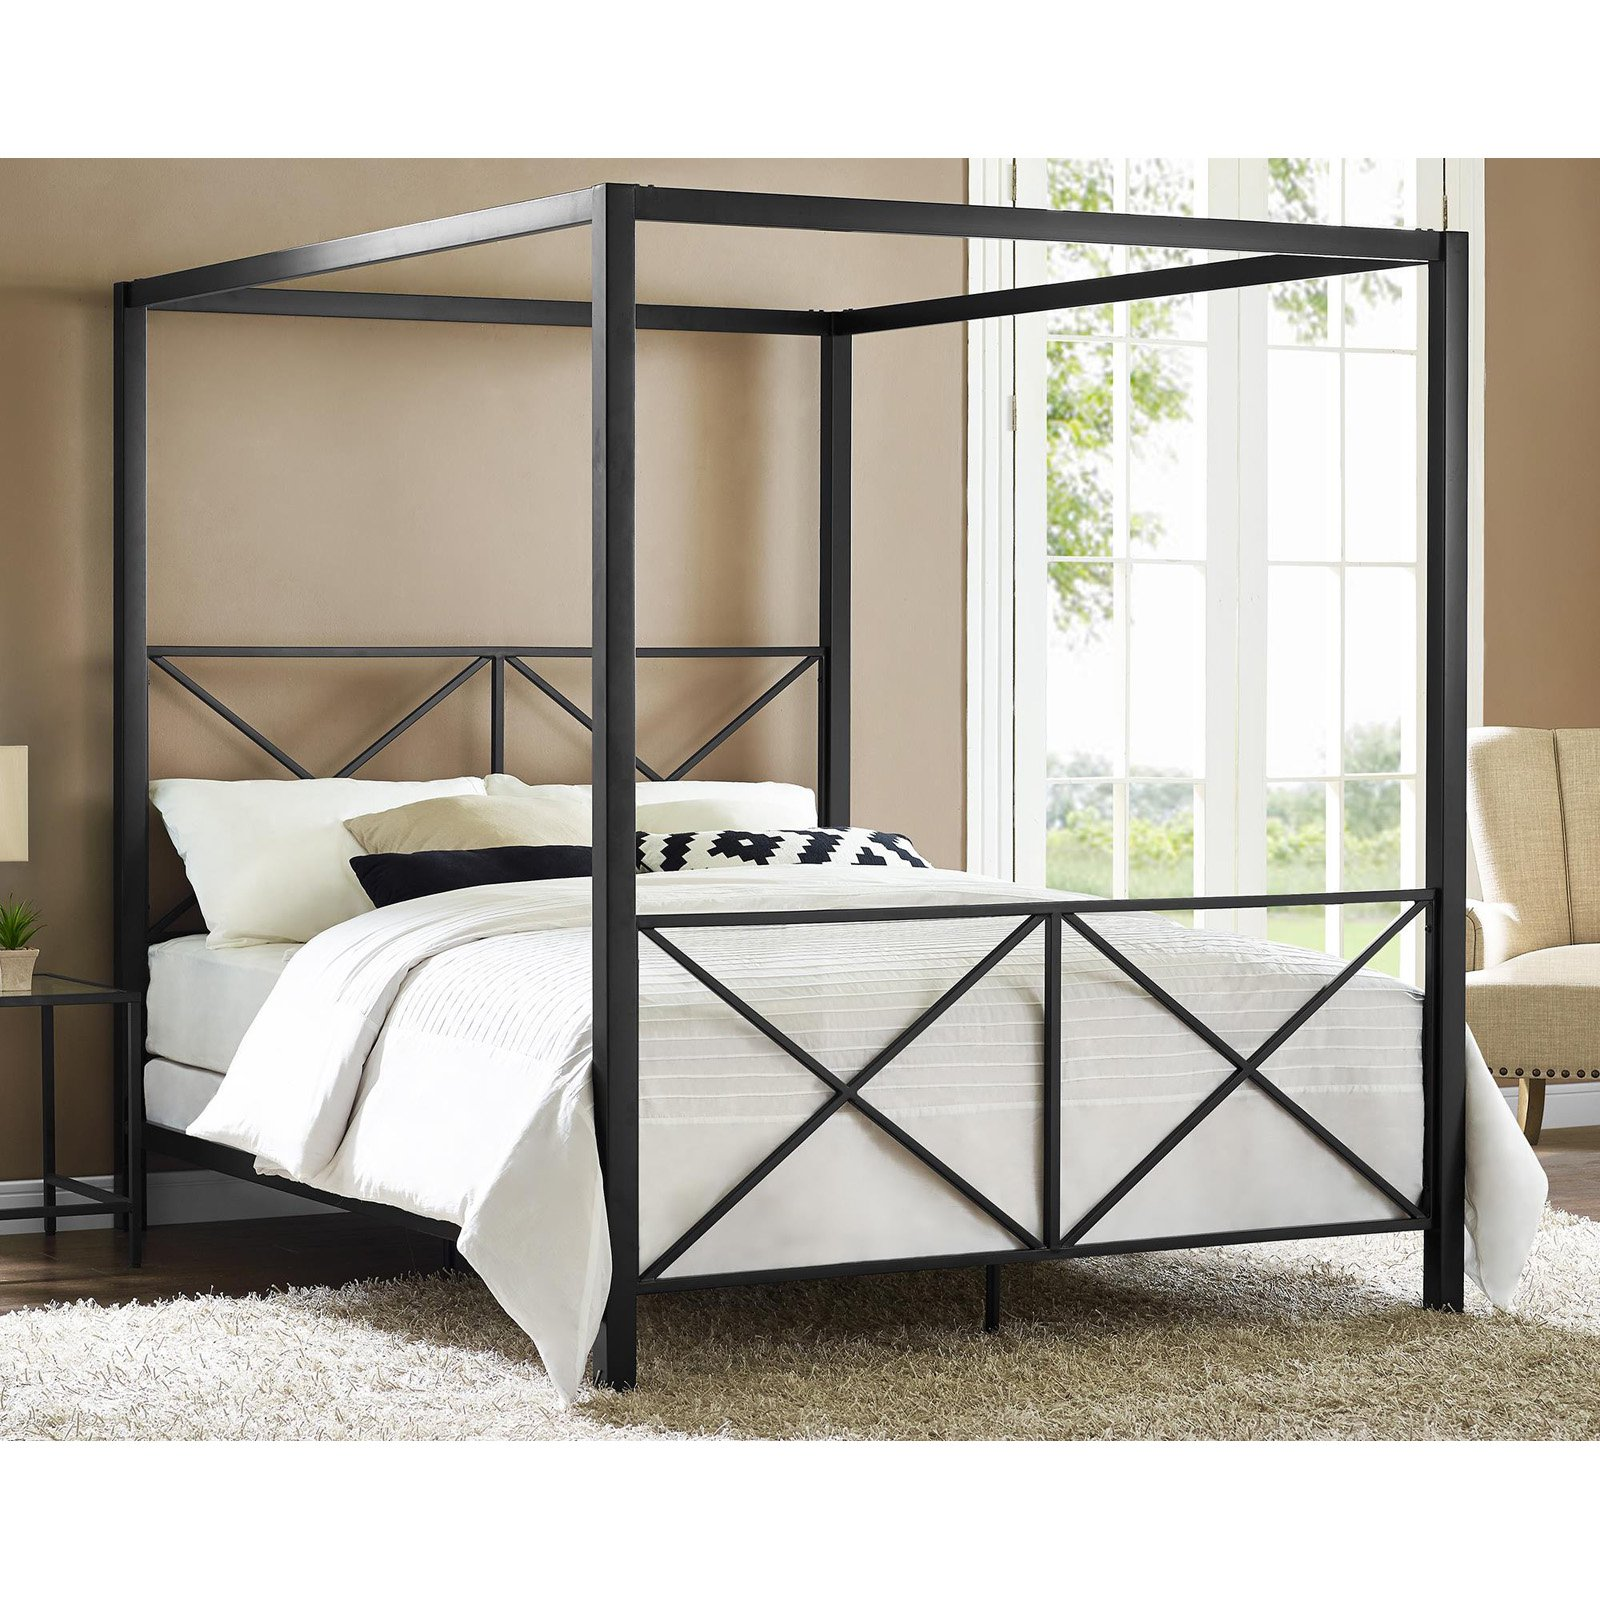 Unique Canopy Bed Frame Remodelling